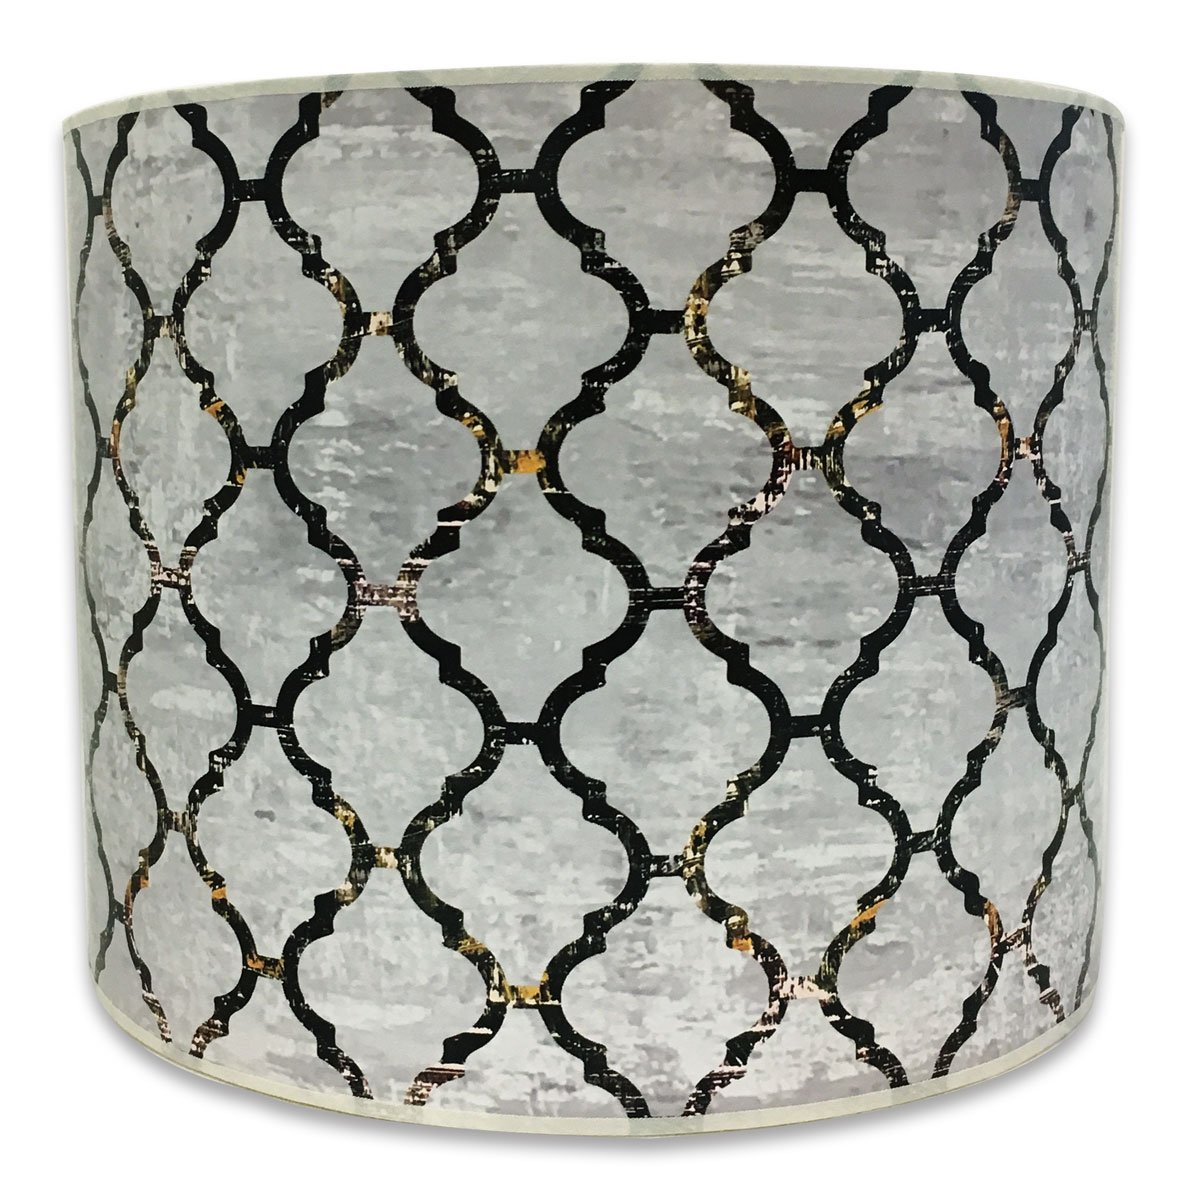 Royal Designs Modern Trendy Decorative Handmade Lamp Shade - Made in USA - Moroccan Tile Textured Design -10 x 10 x 8 by Royal Designs, Inc